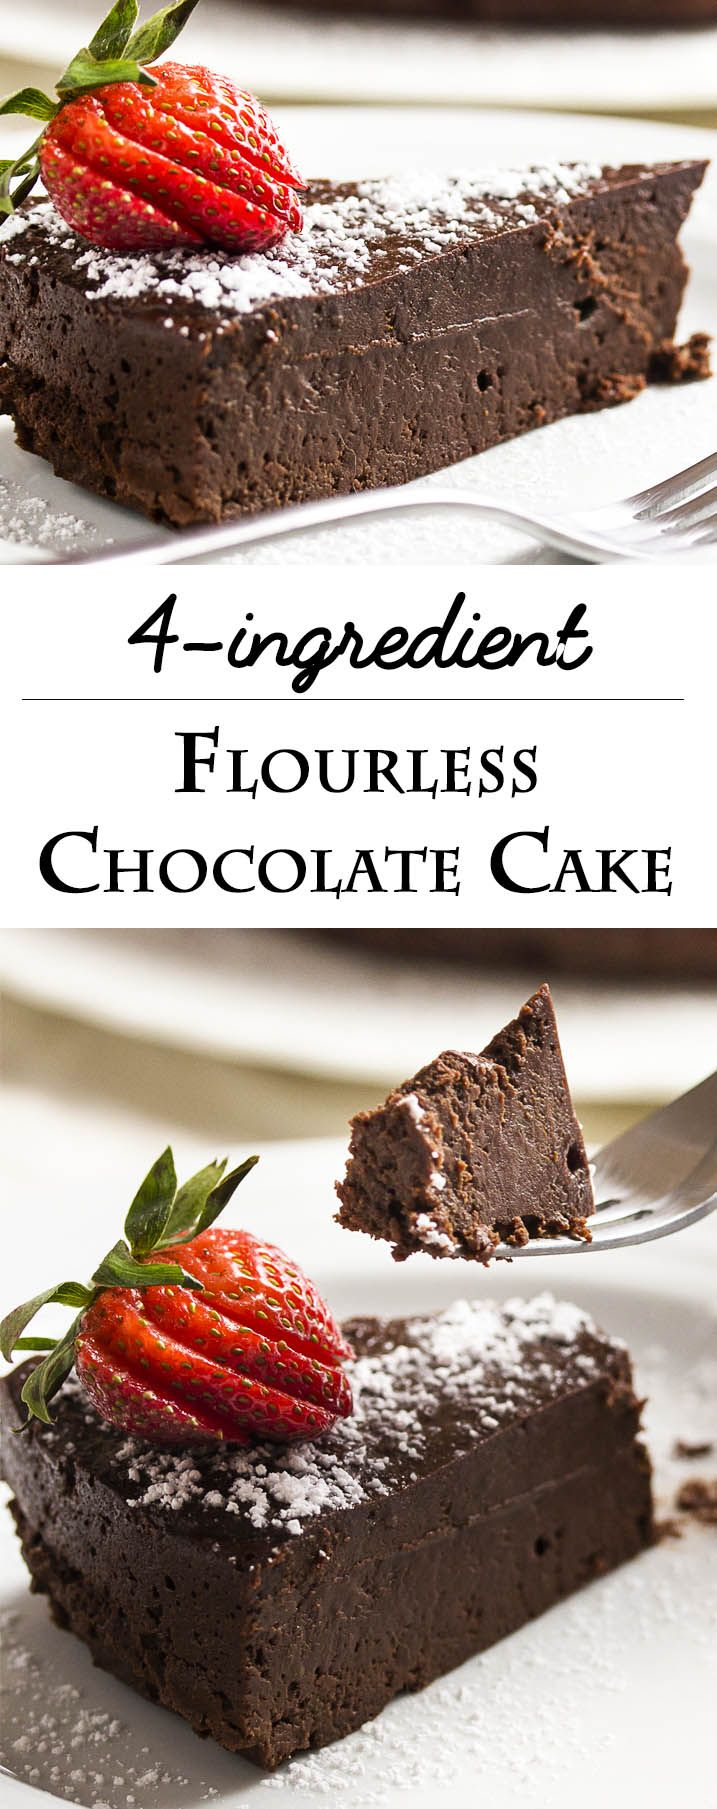 Best 10+ Flourless chocolate torte ideas on Pinterest | Flourless ...